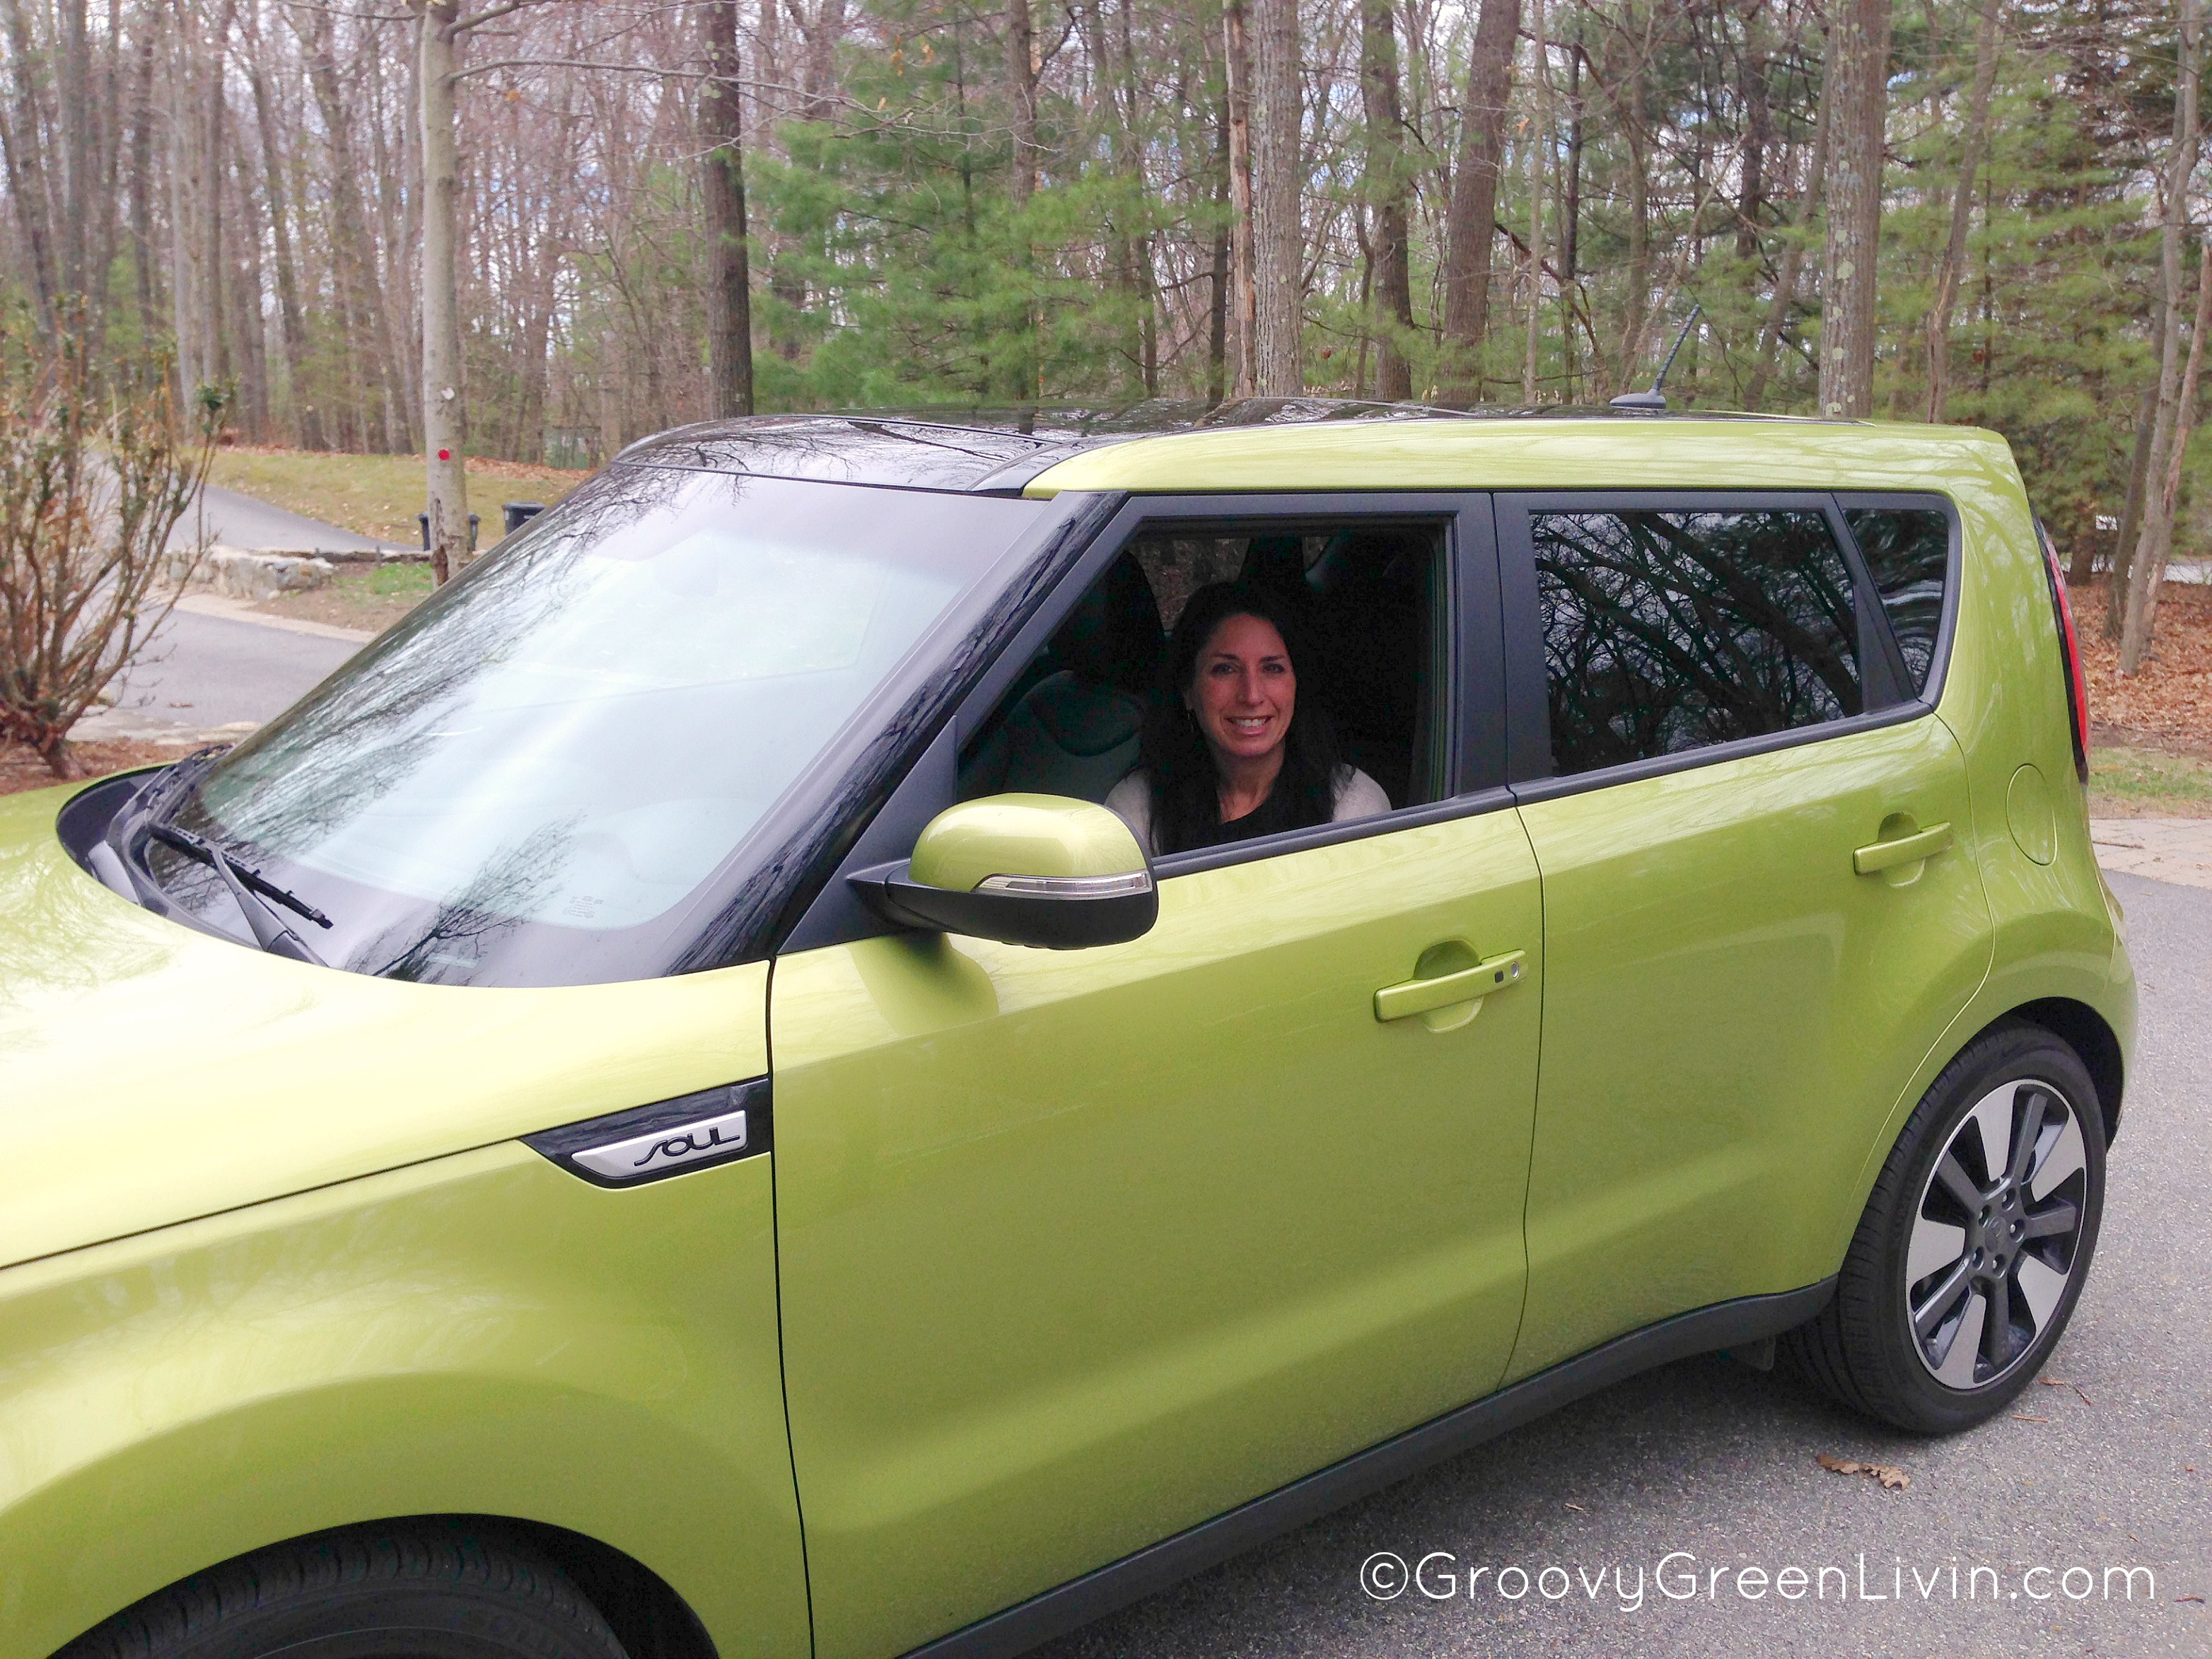 Car Review: Behind the Wheel of a Kia Soul